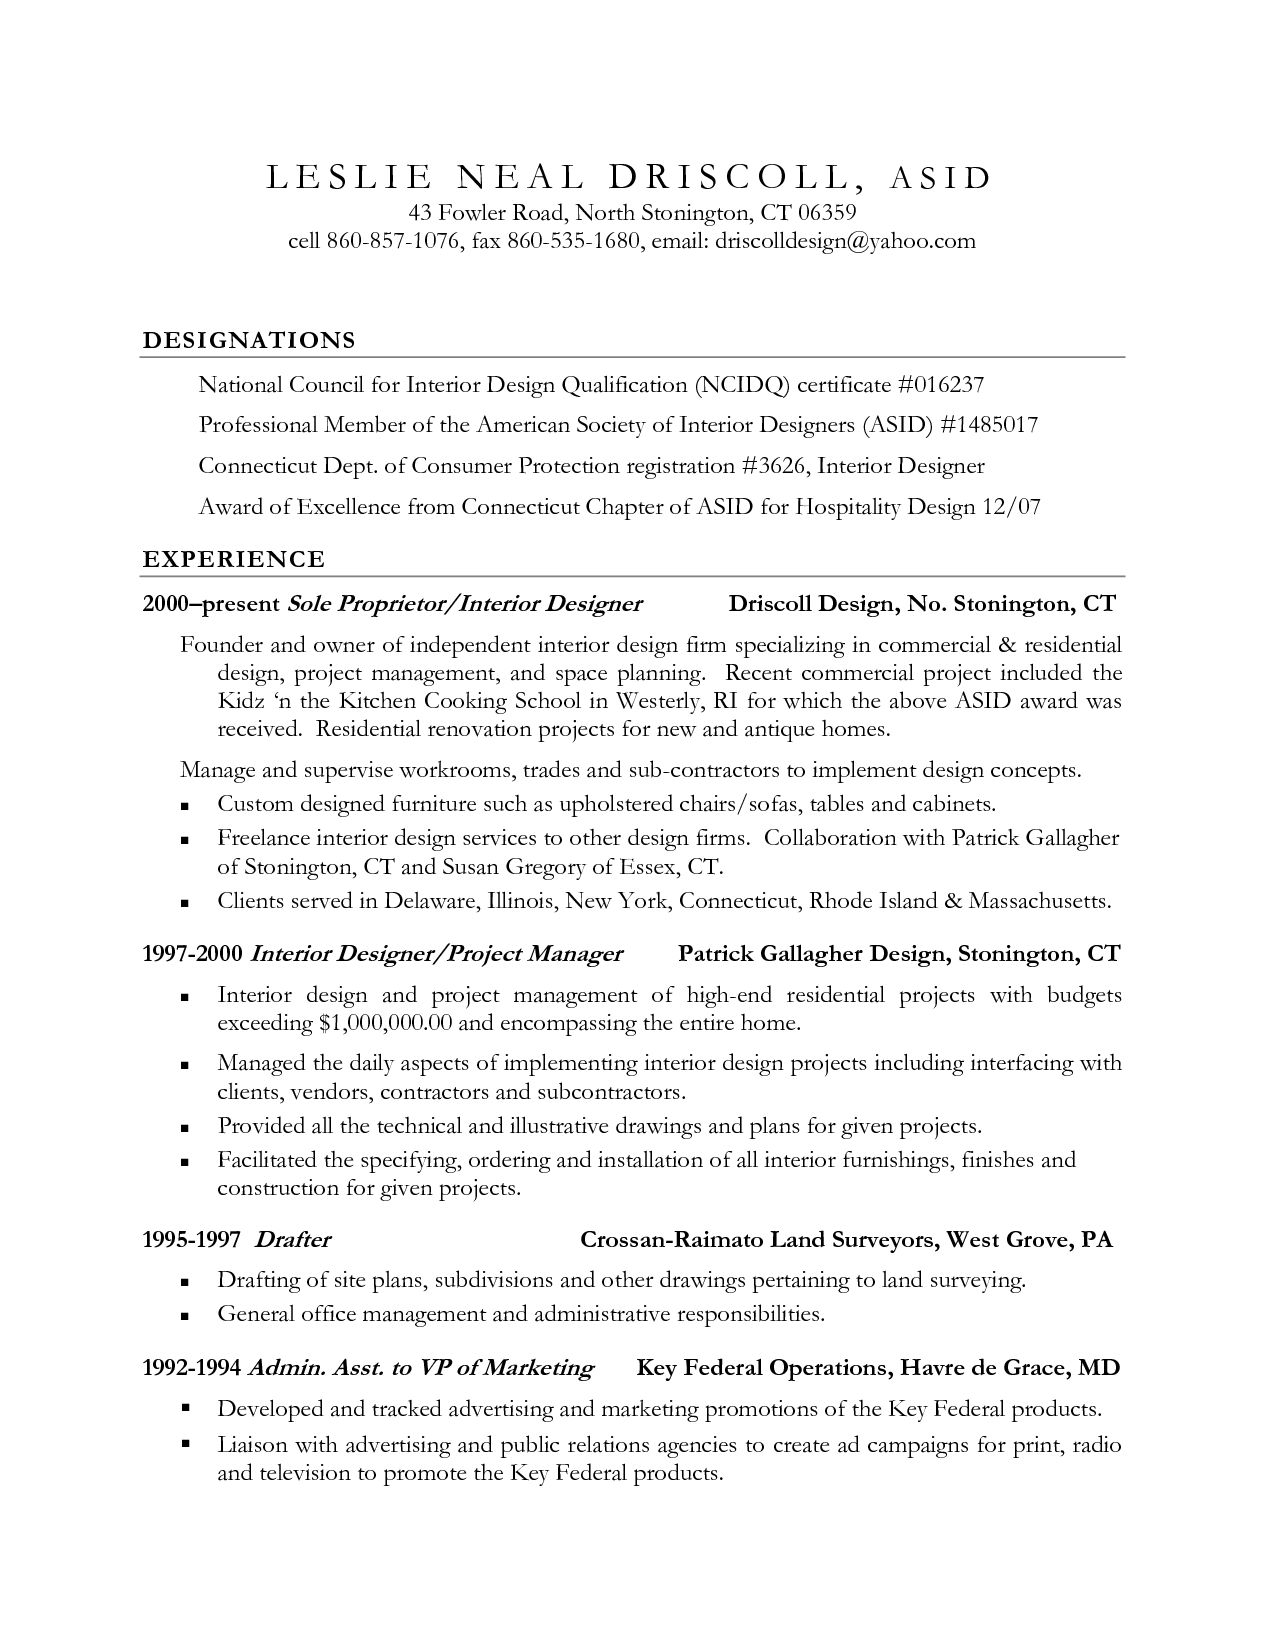 12 Free Pages Resume Templates Mac 12 Free Pages Resume Templates Mac,  Apple Pages Resume Templates, Resume Templates For Word, Free Resume  Templates For